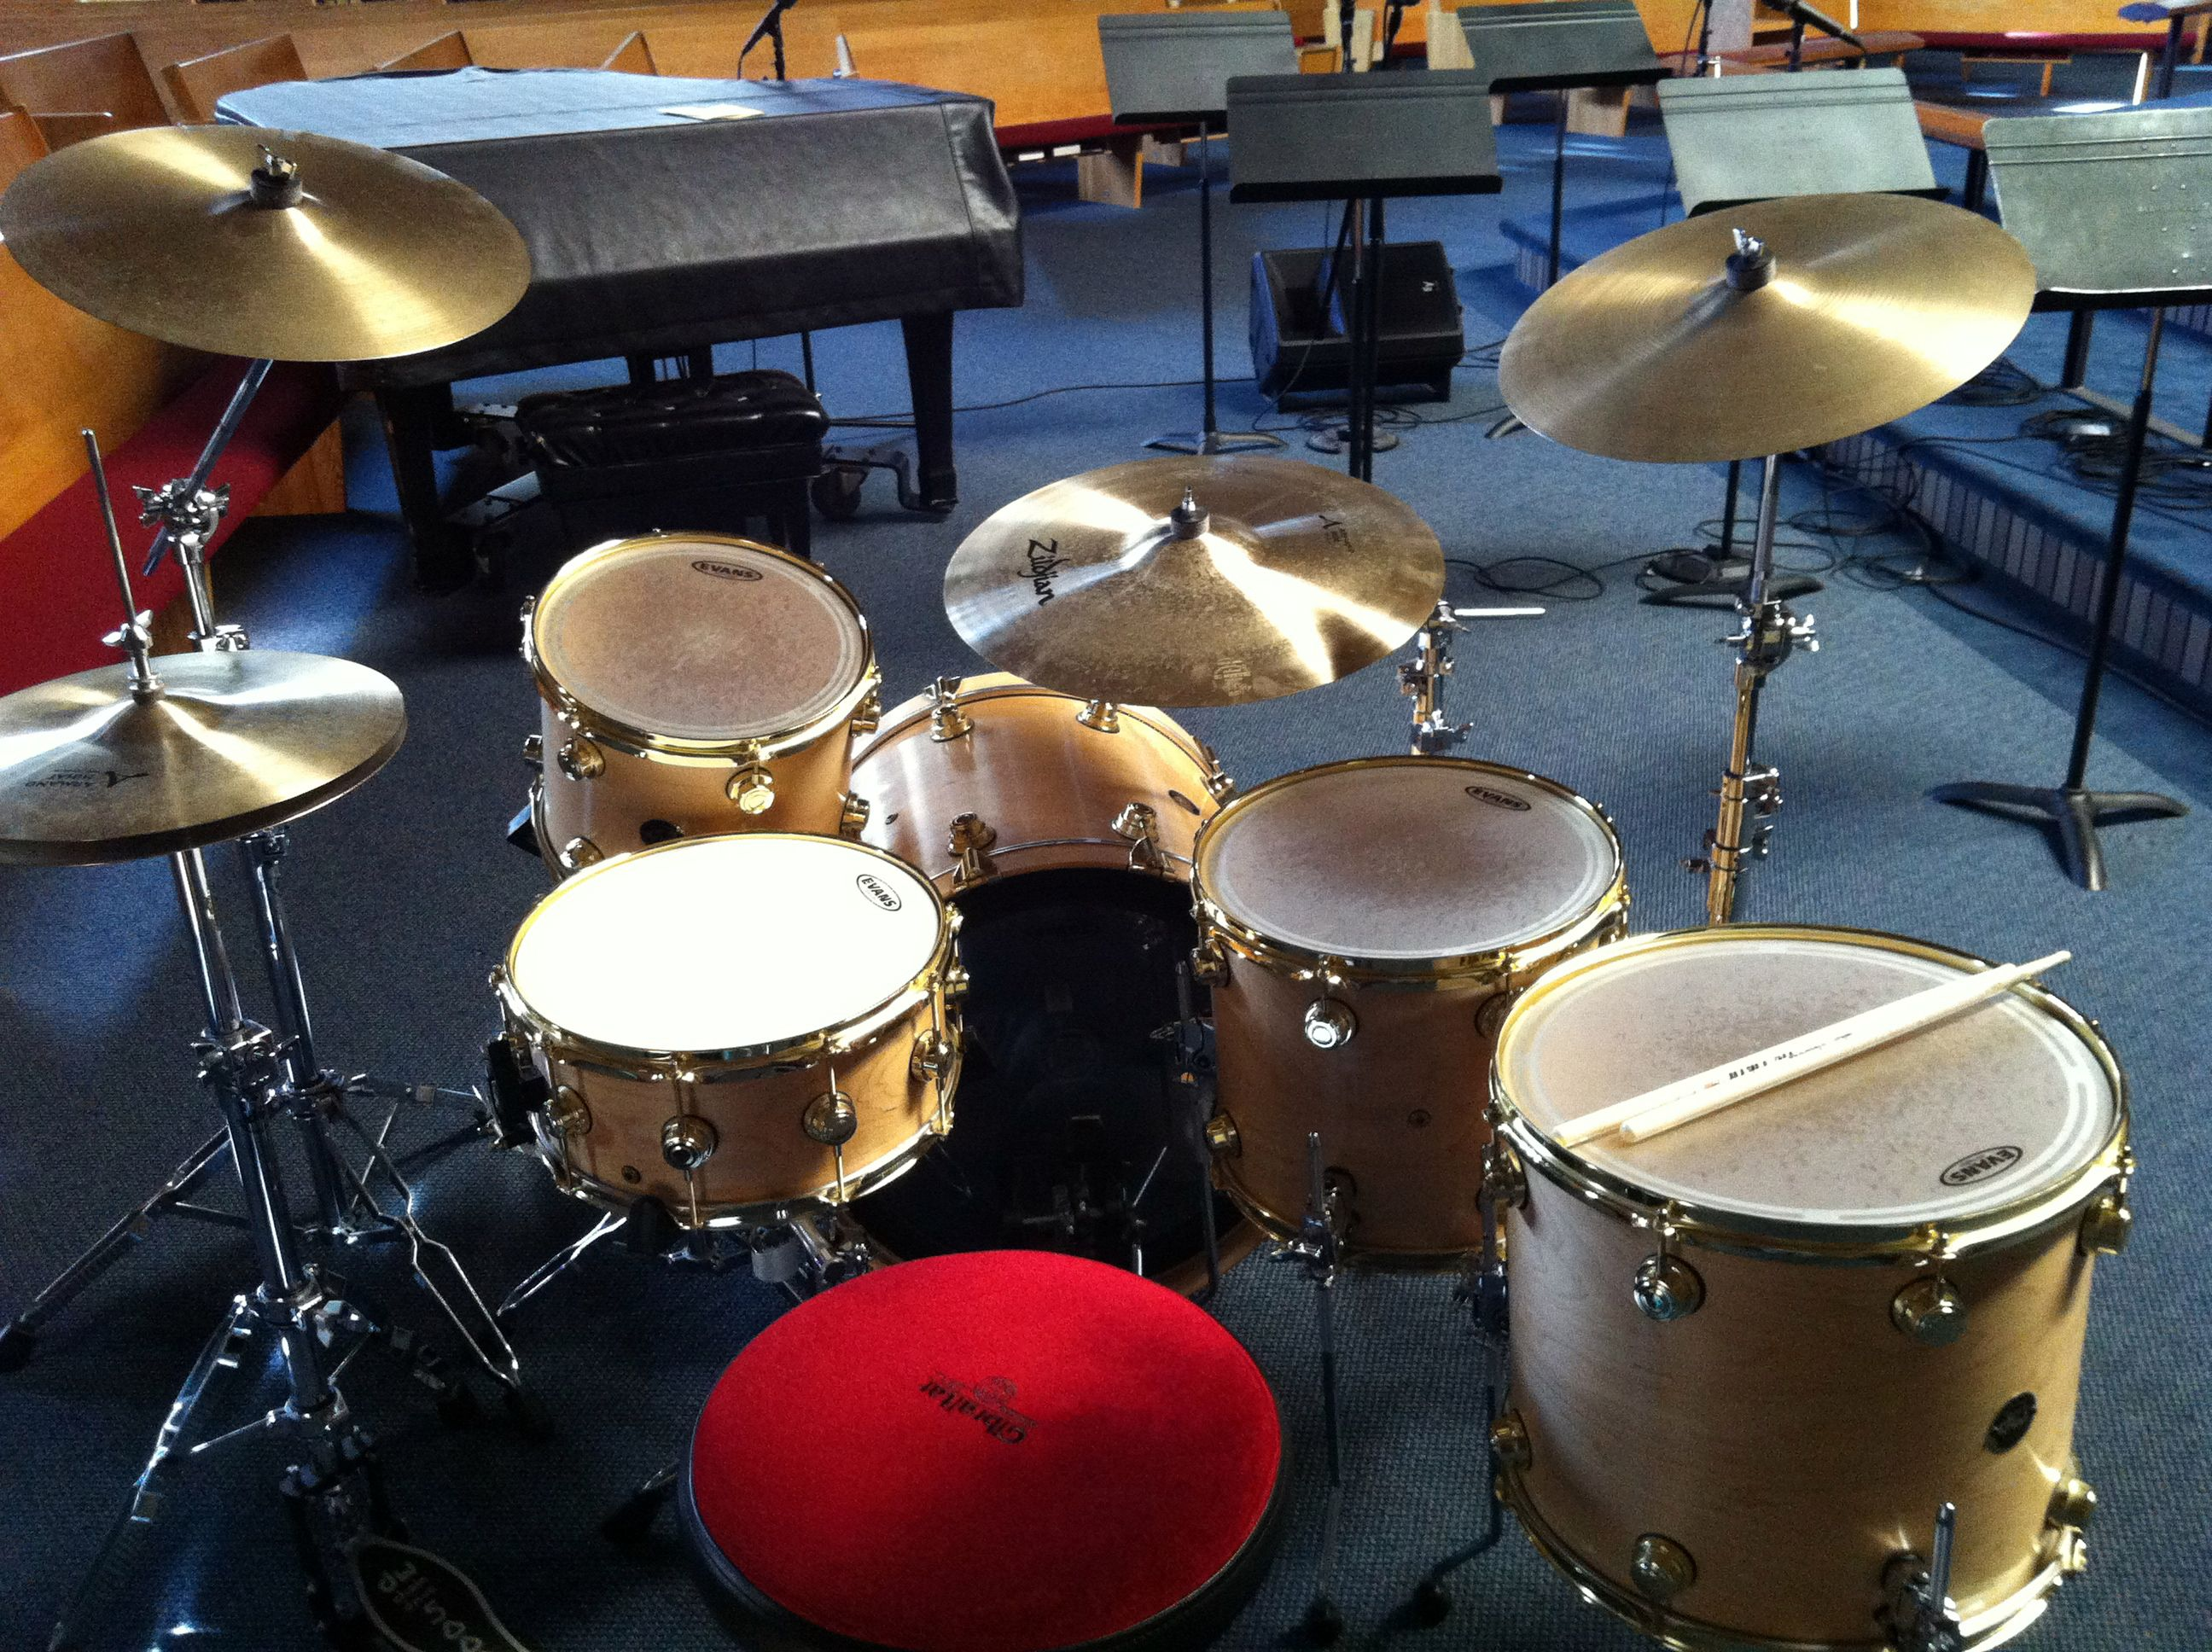 My Current Setup Drum Workshop Drums And Zildjian Cymbals That S A 10 X 12 Small Tom On A Snare Stand 12 X 14 And 14 Zildjian Cymbals Drums Drum Kits